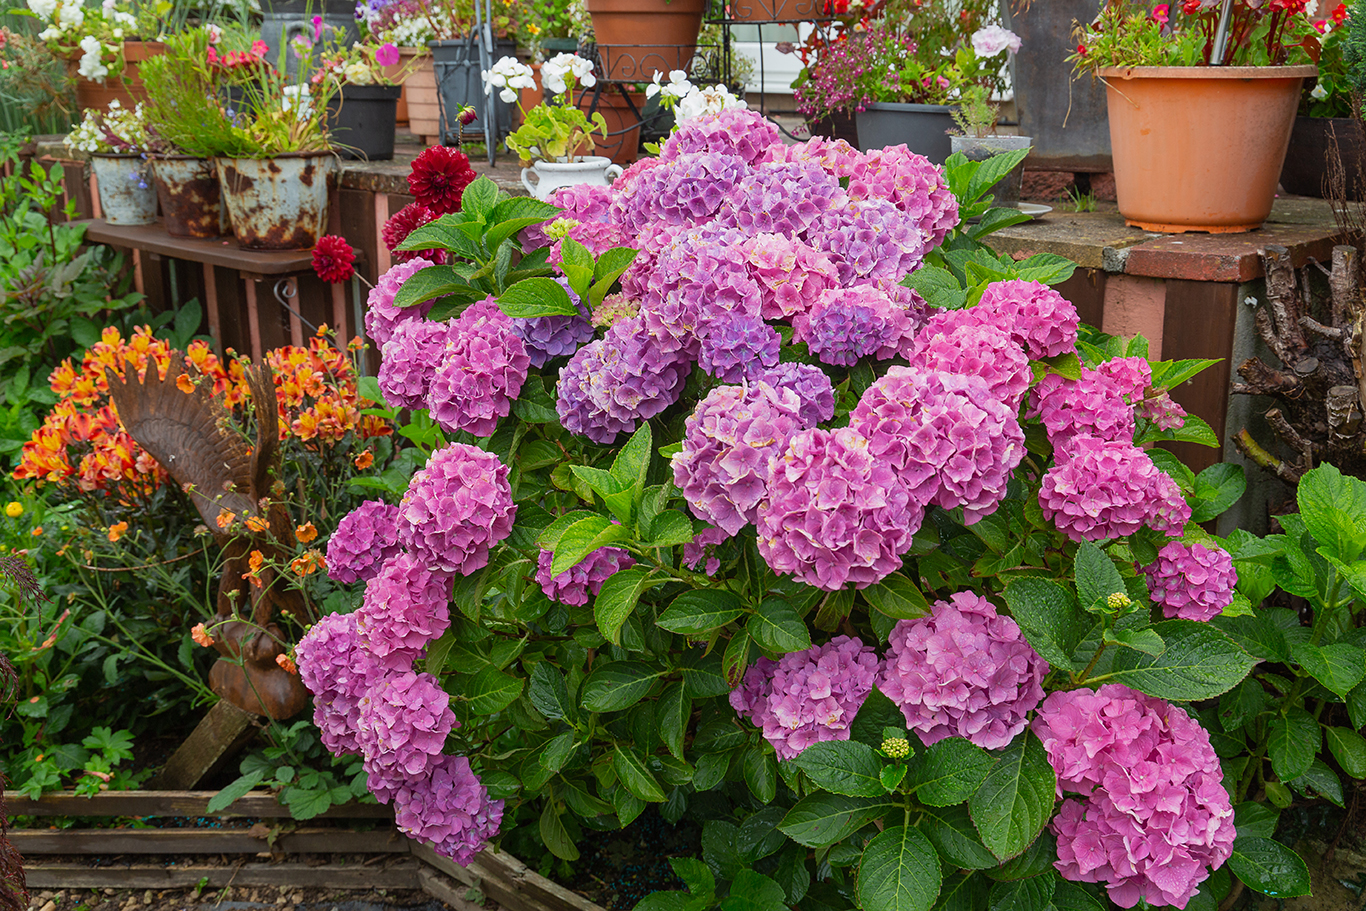 hydrangea macrophylla (1 of 1) – Copy